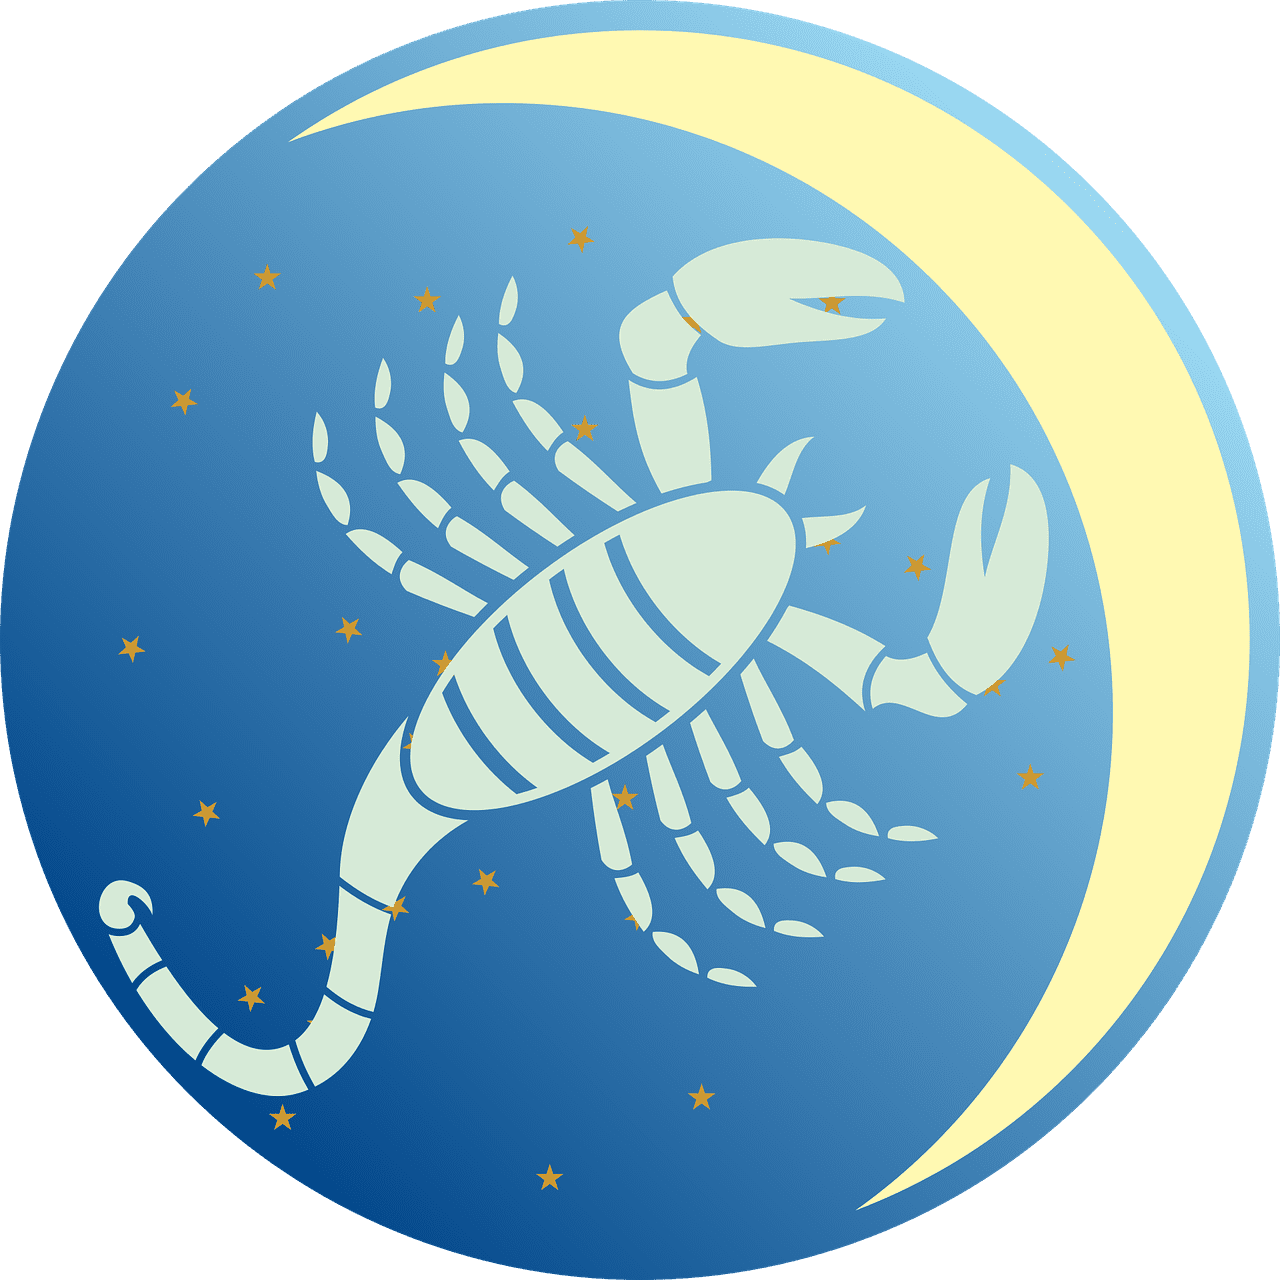 A depiction of the Scorpio star sign | Photo: Pixabay